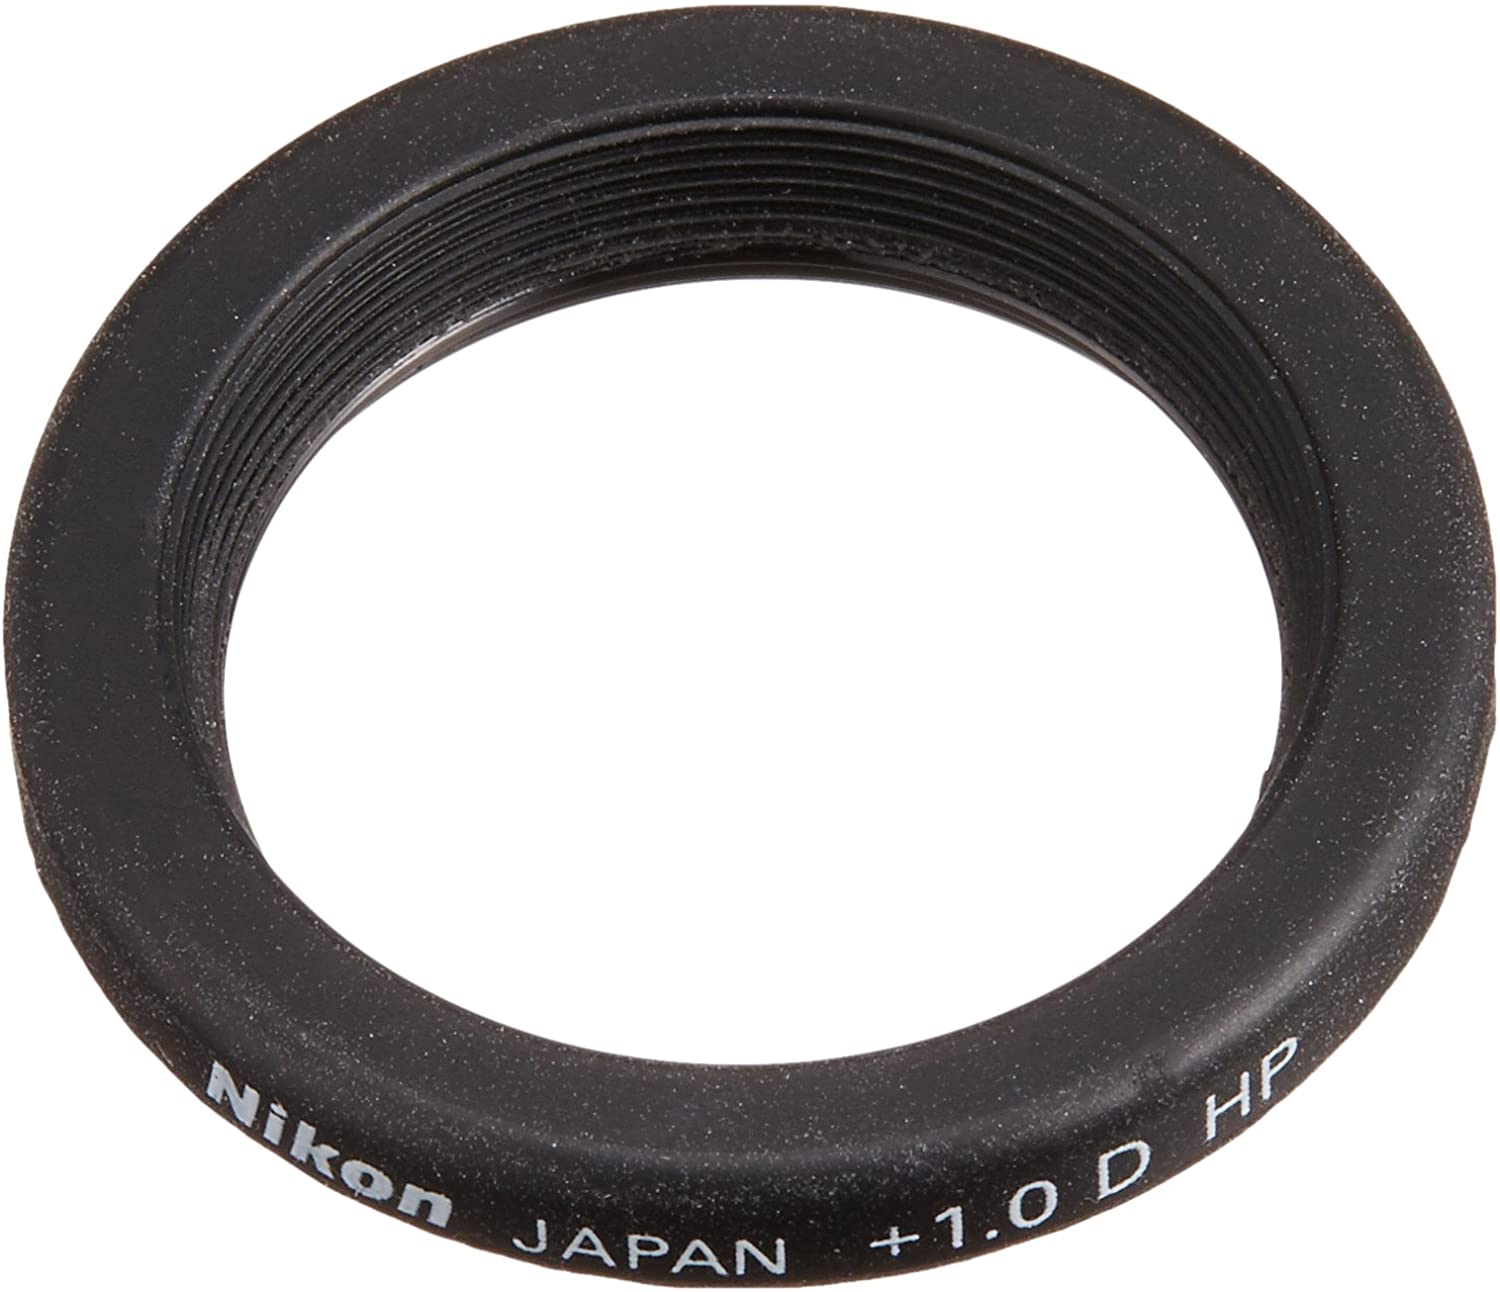 Nikon HP +1.0 screw-in Corrective Dioptric Eyepiece for Nikon F90X,N90S,F90,N90,F-801S,N8008S,F-801,N8008 Camera